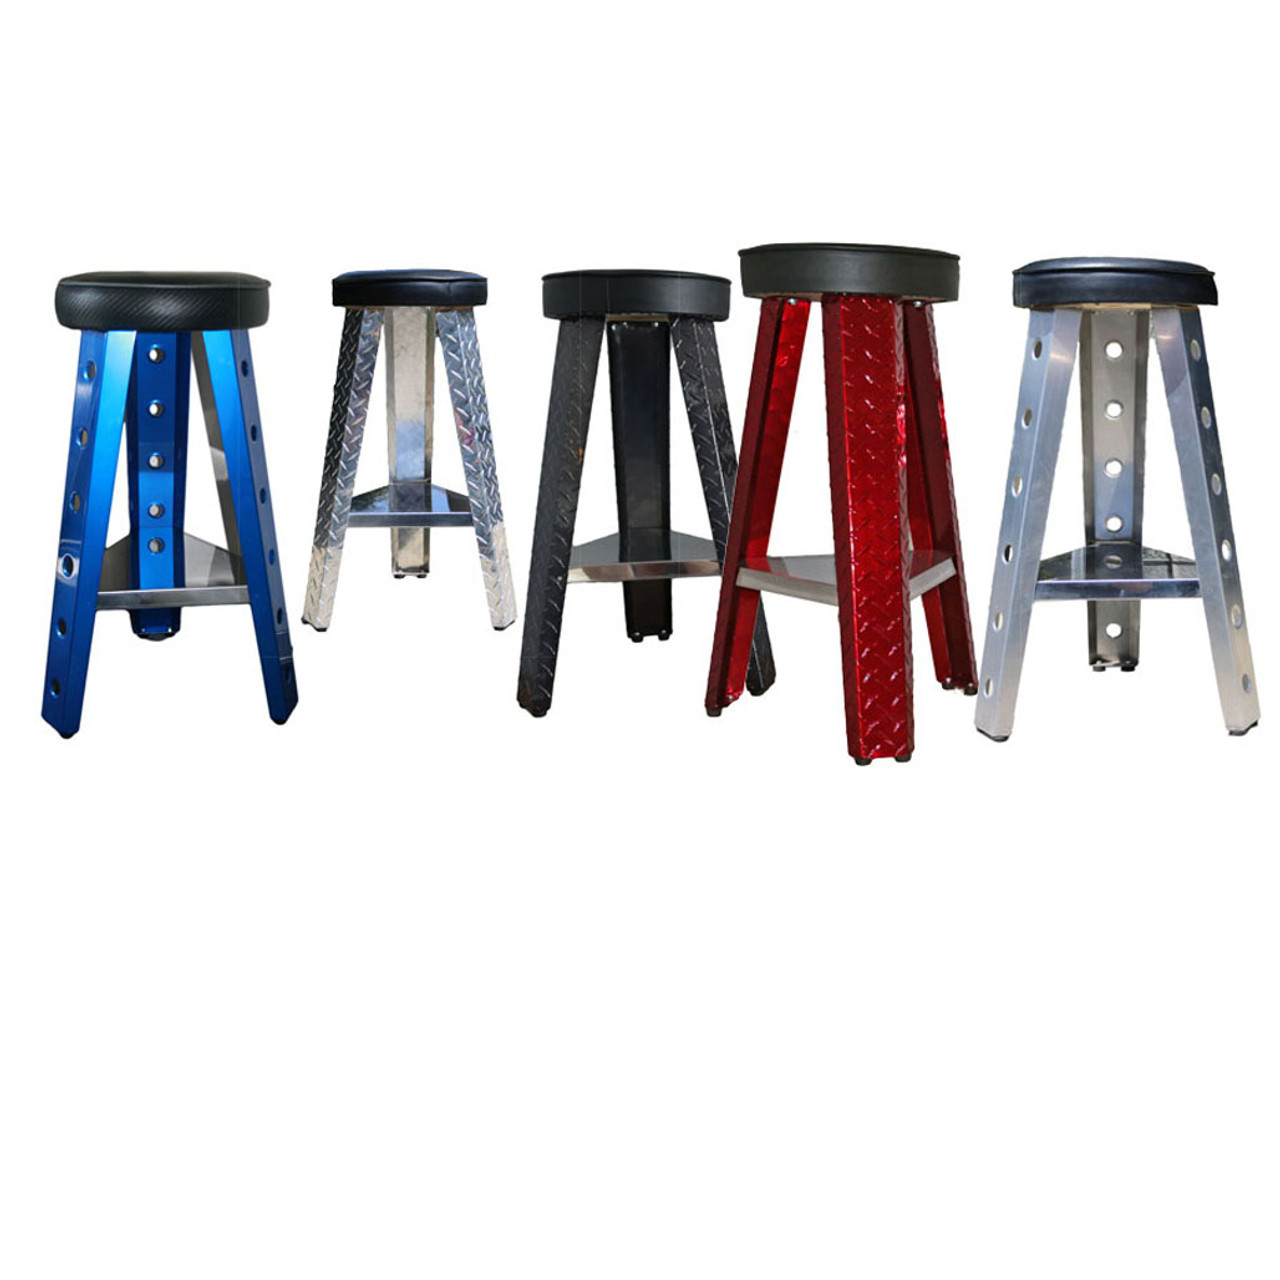 Man Cave Stool Group, Smooth Blue, Diamond Plate Silver, Diamond Plate Black Chrome, Diamond Plate Candy Red, Smooth Aluminum Stool